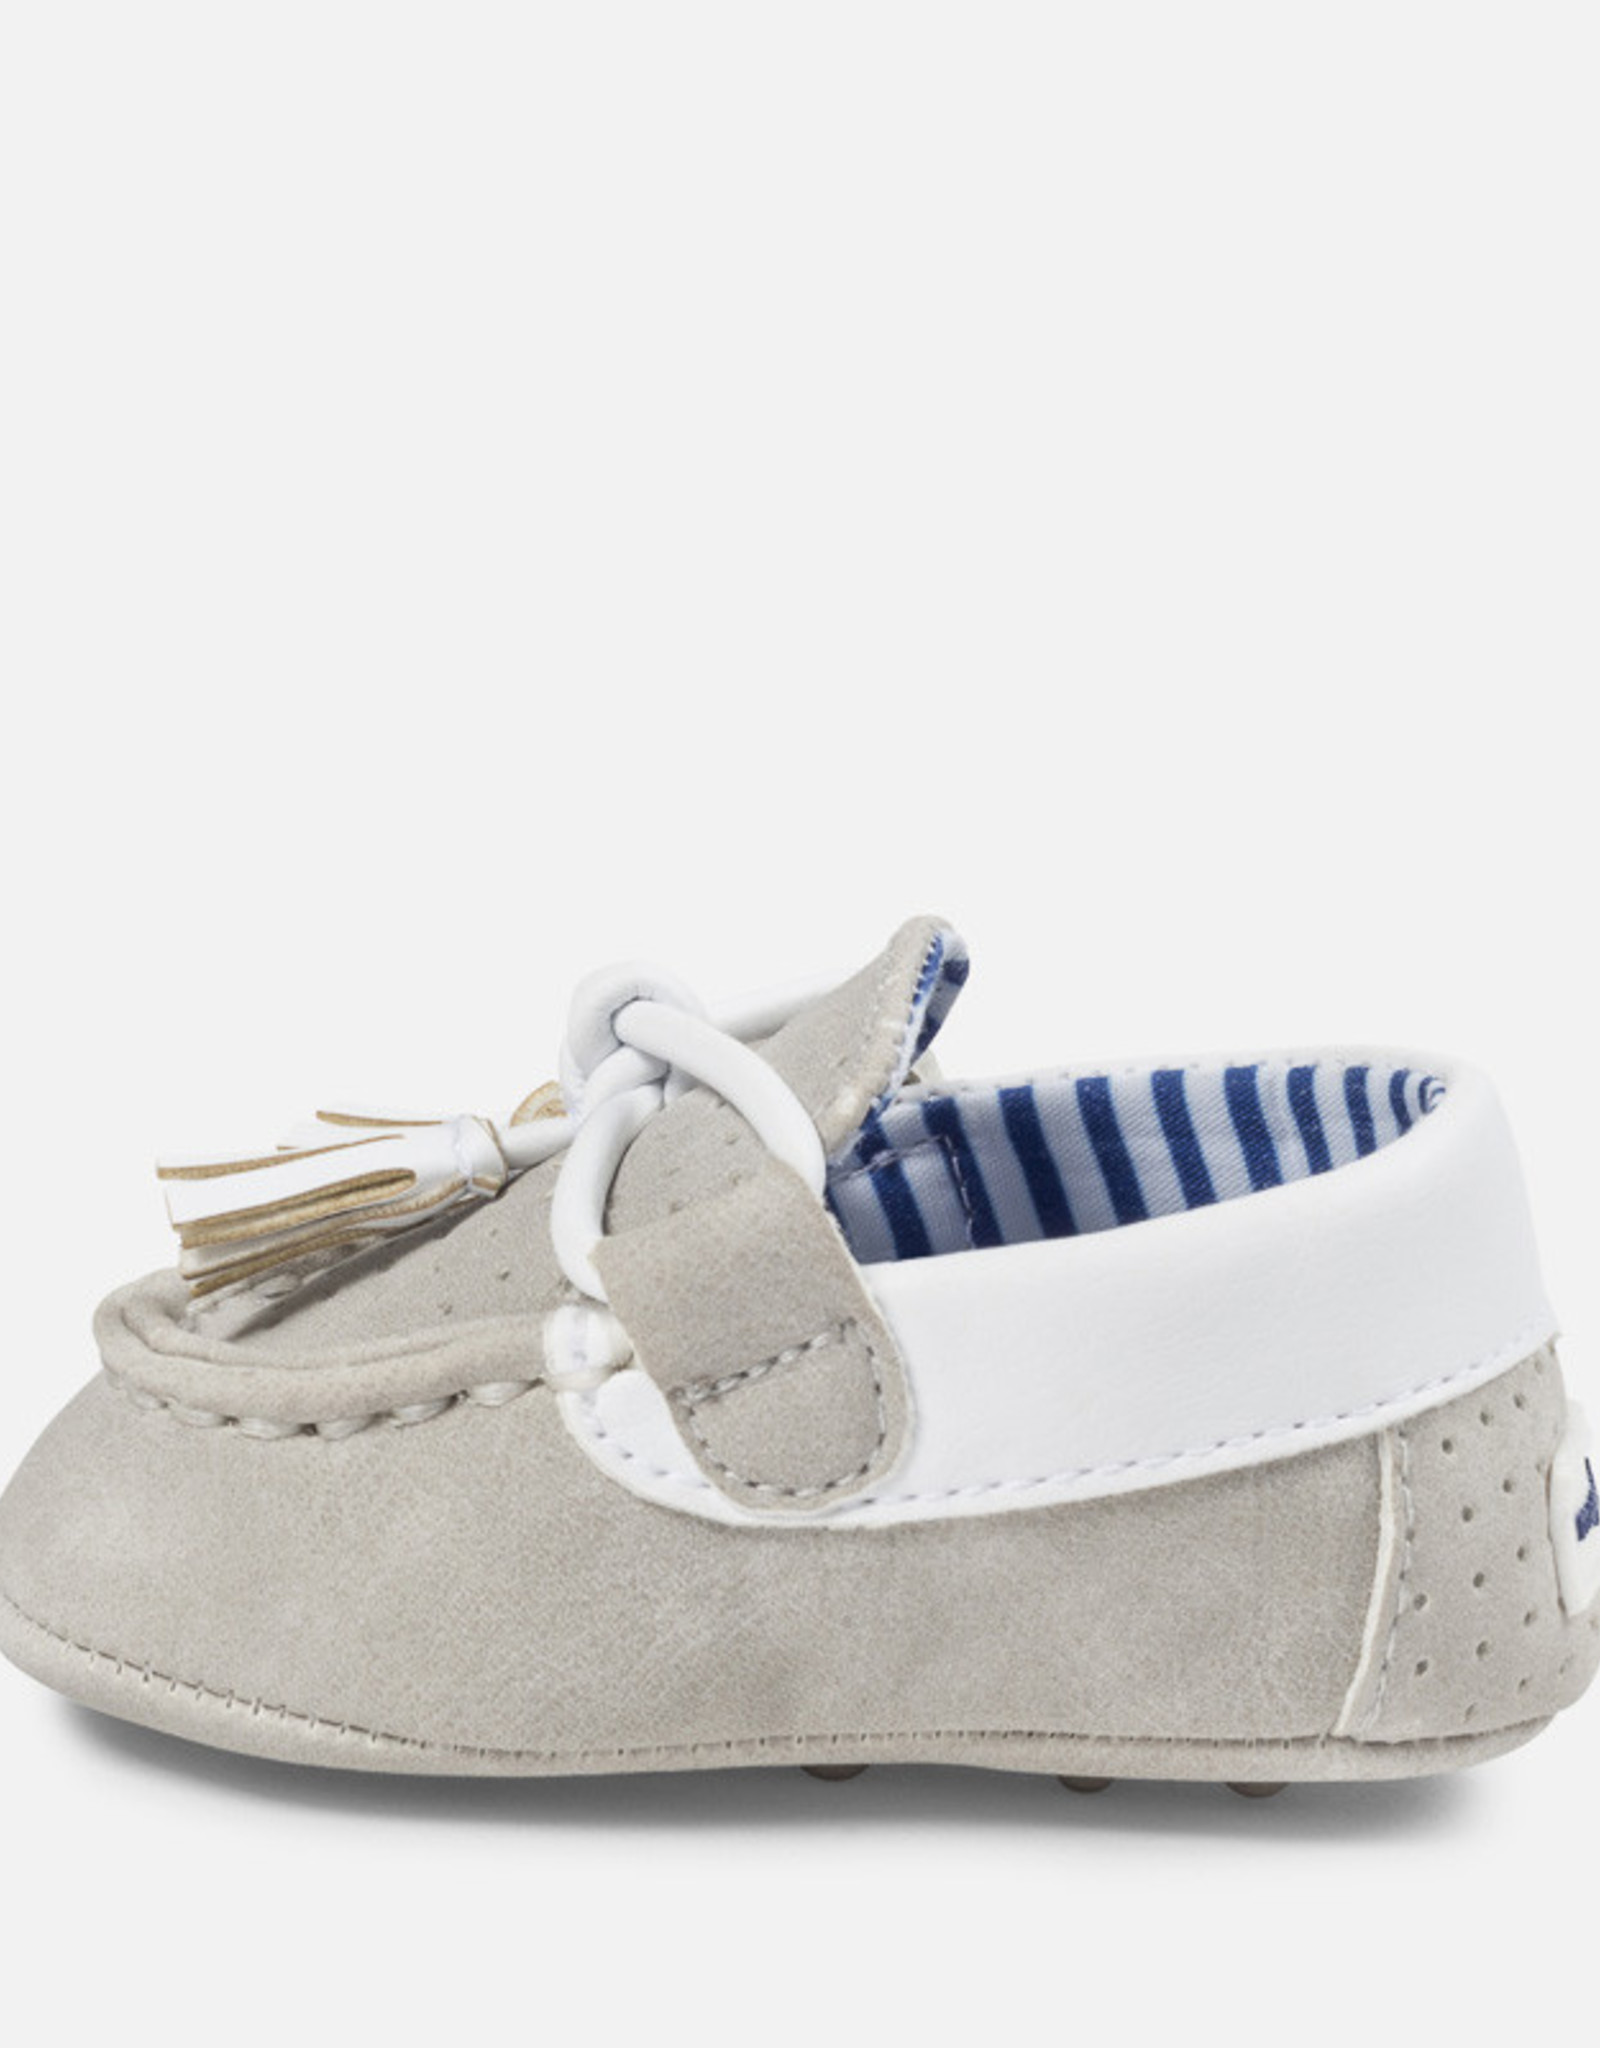 Mayoral Baby's loafers